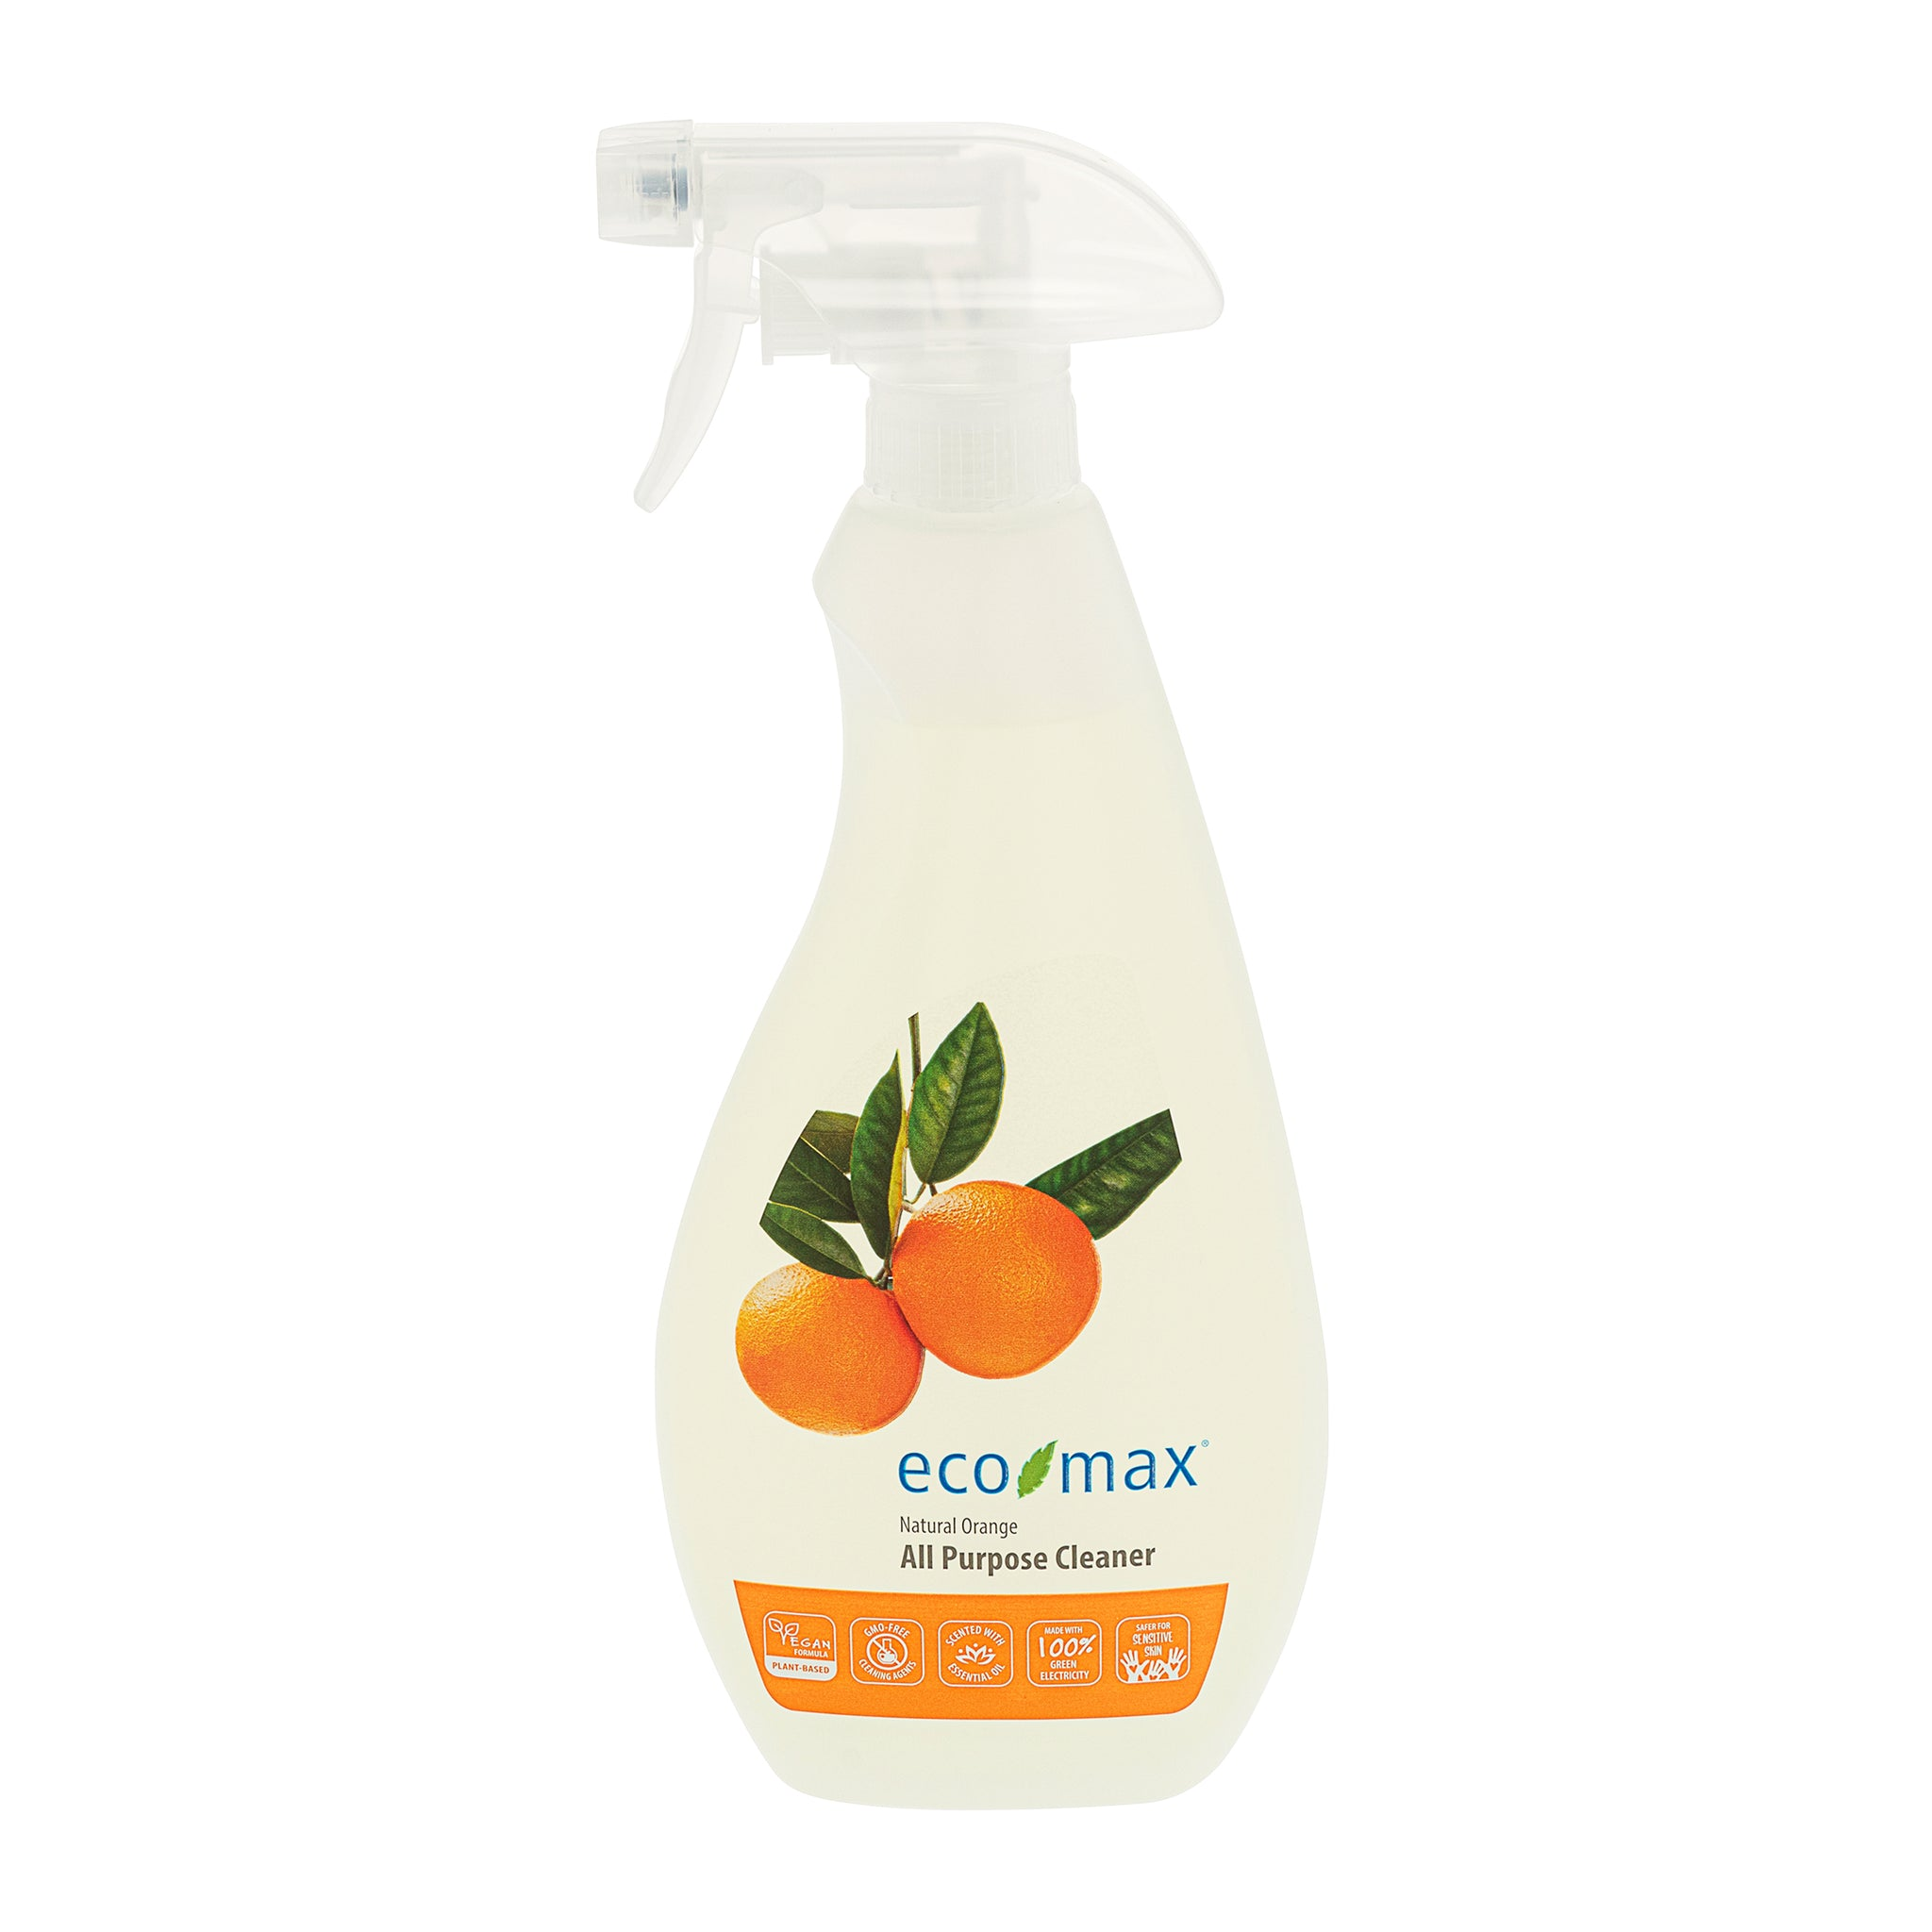 All Purpose Cleaner - Natural Orange 710ml